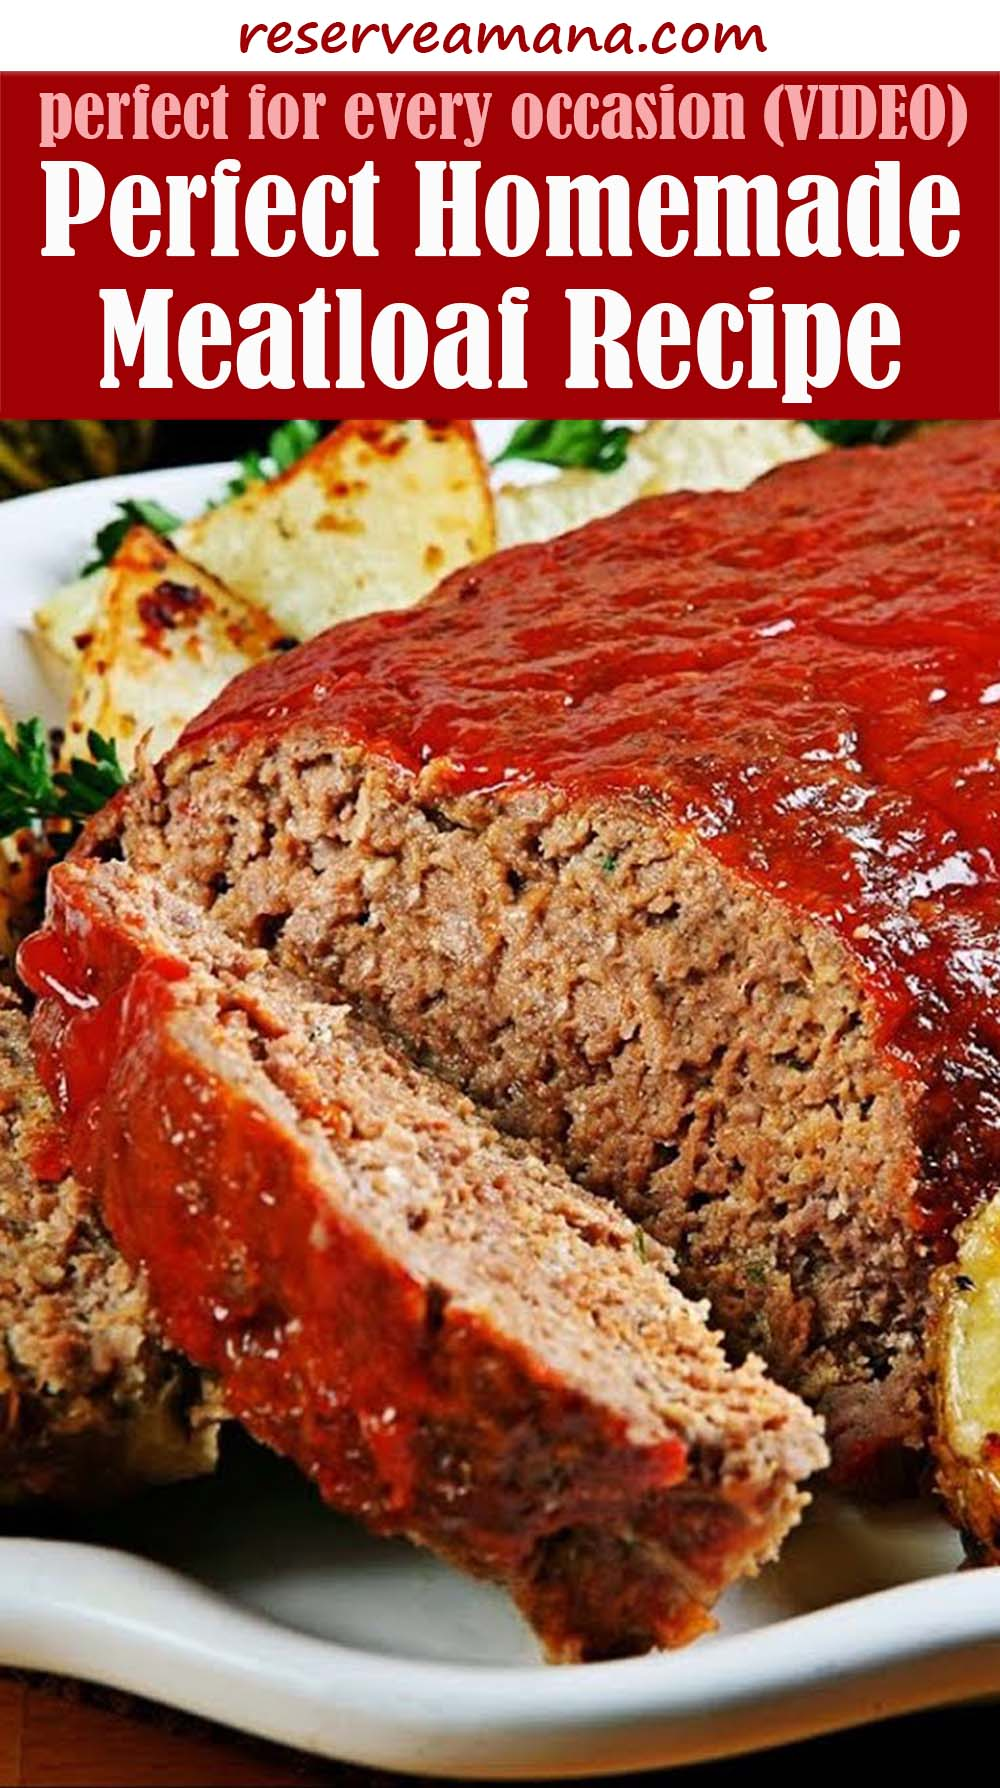 Perfect Homemade Meatloaf Recipe